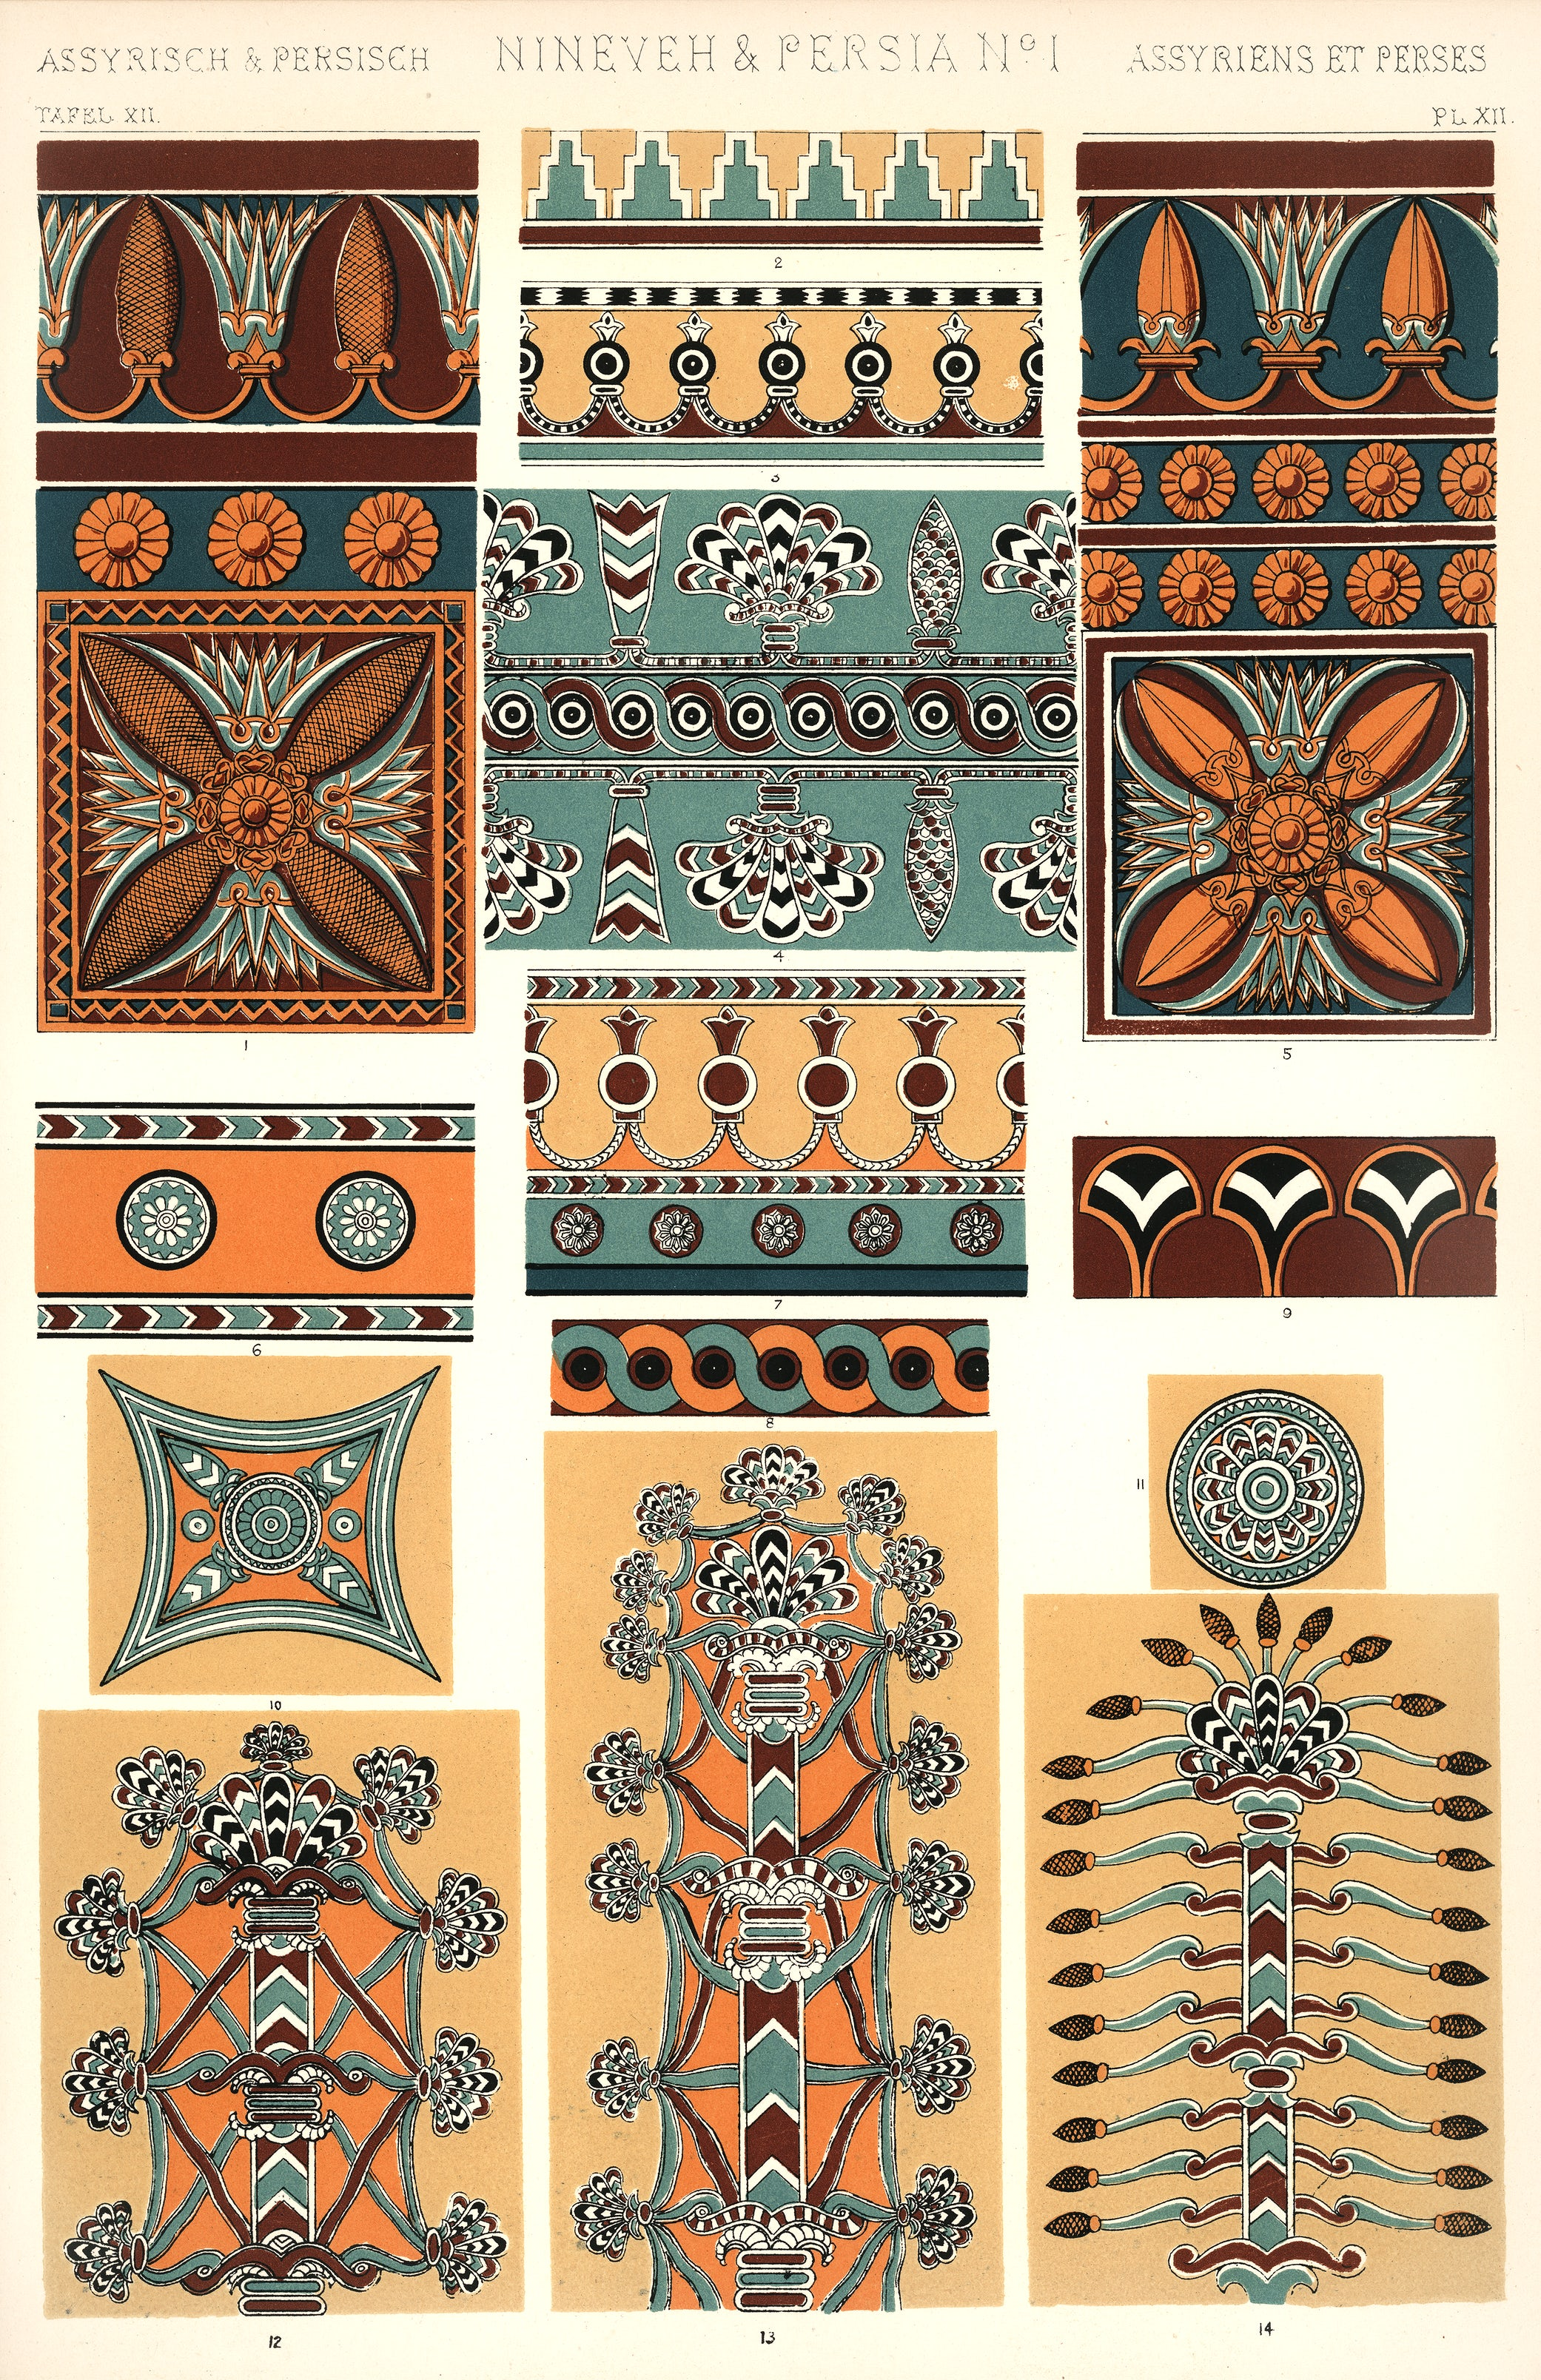 Owen Jones famous 19th Century Grammar of Ornament. One of the finest graphic design books ever produced. From our own original antique chromolithographic version of the famous book we have created a high resolution digitally enhanced copy for you.